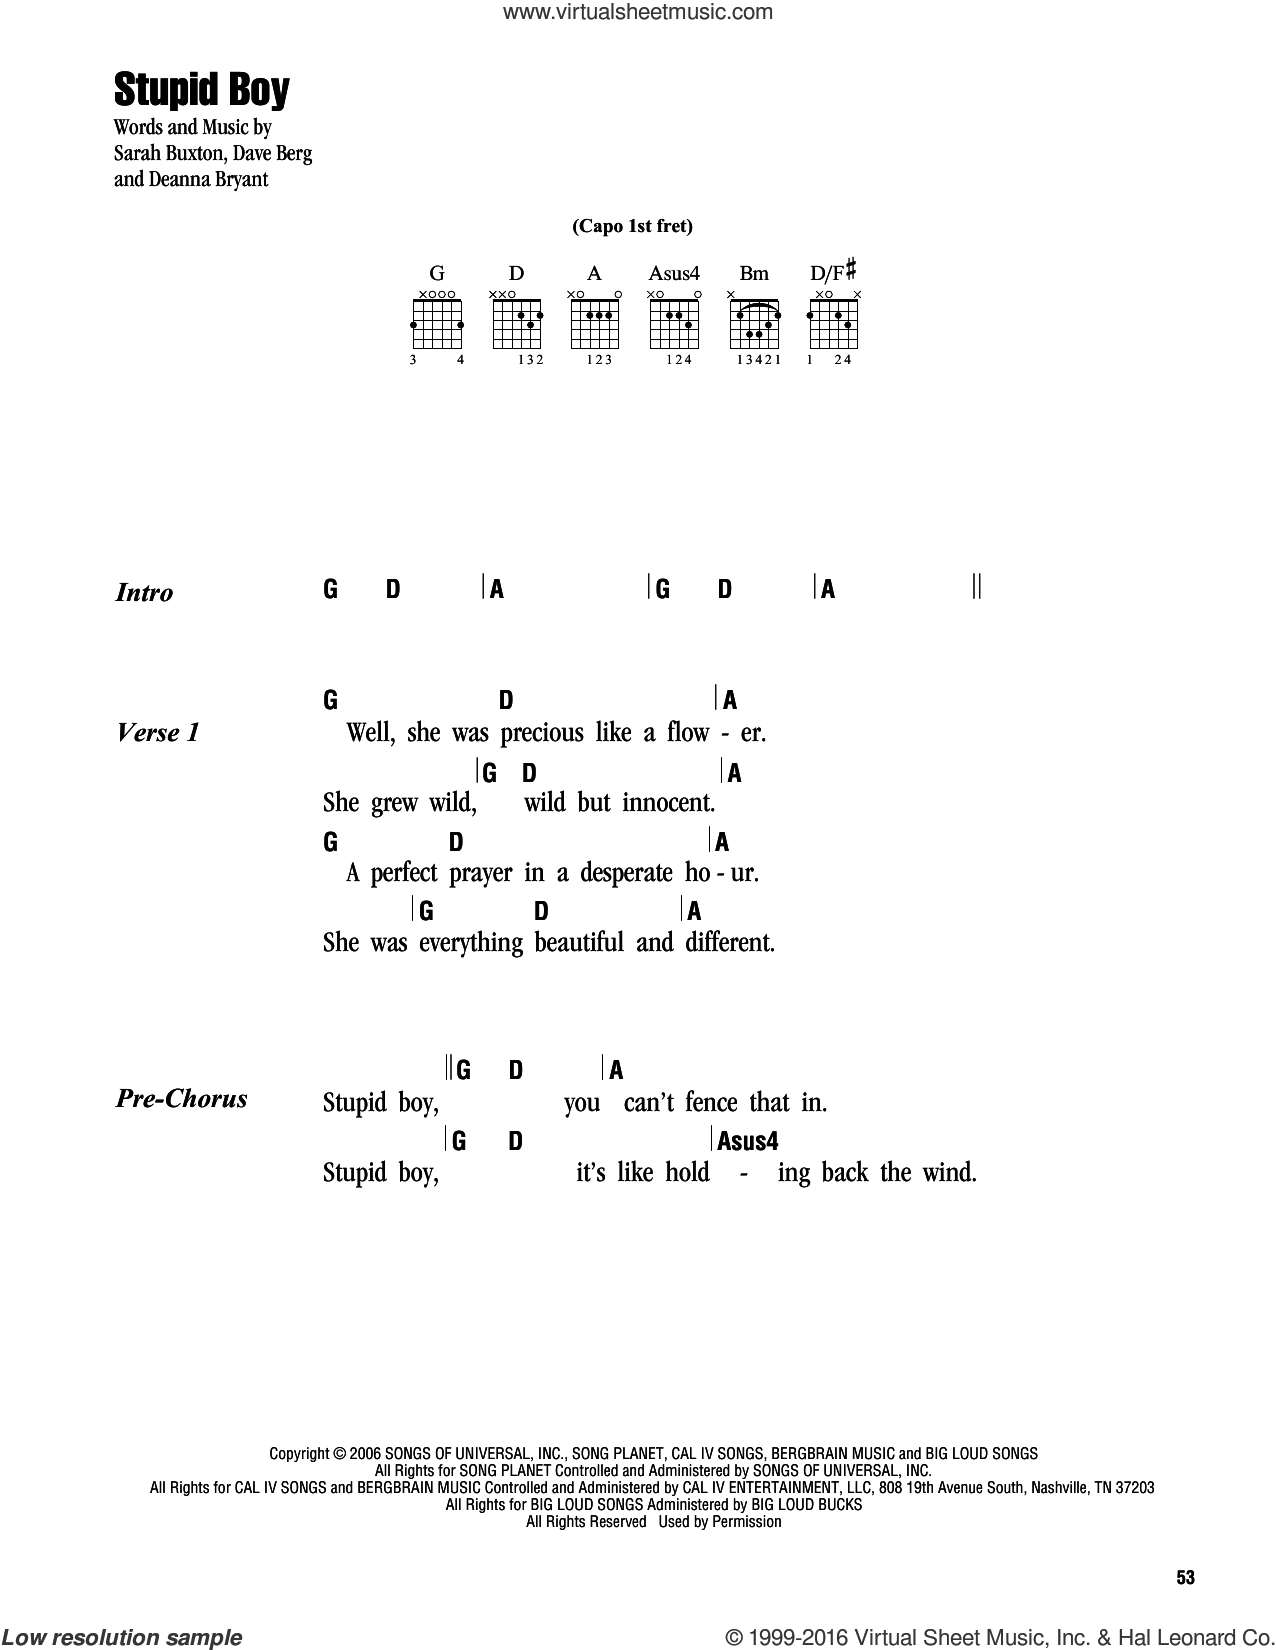 Stupid Boy sheet music for guitar (chords) by Keith Urban, Dave Berg, Deanna Bryant and Sarah Buxton, intermediate. Score Image Preview.